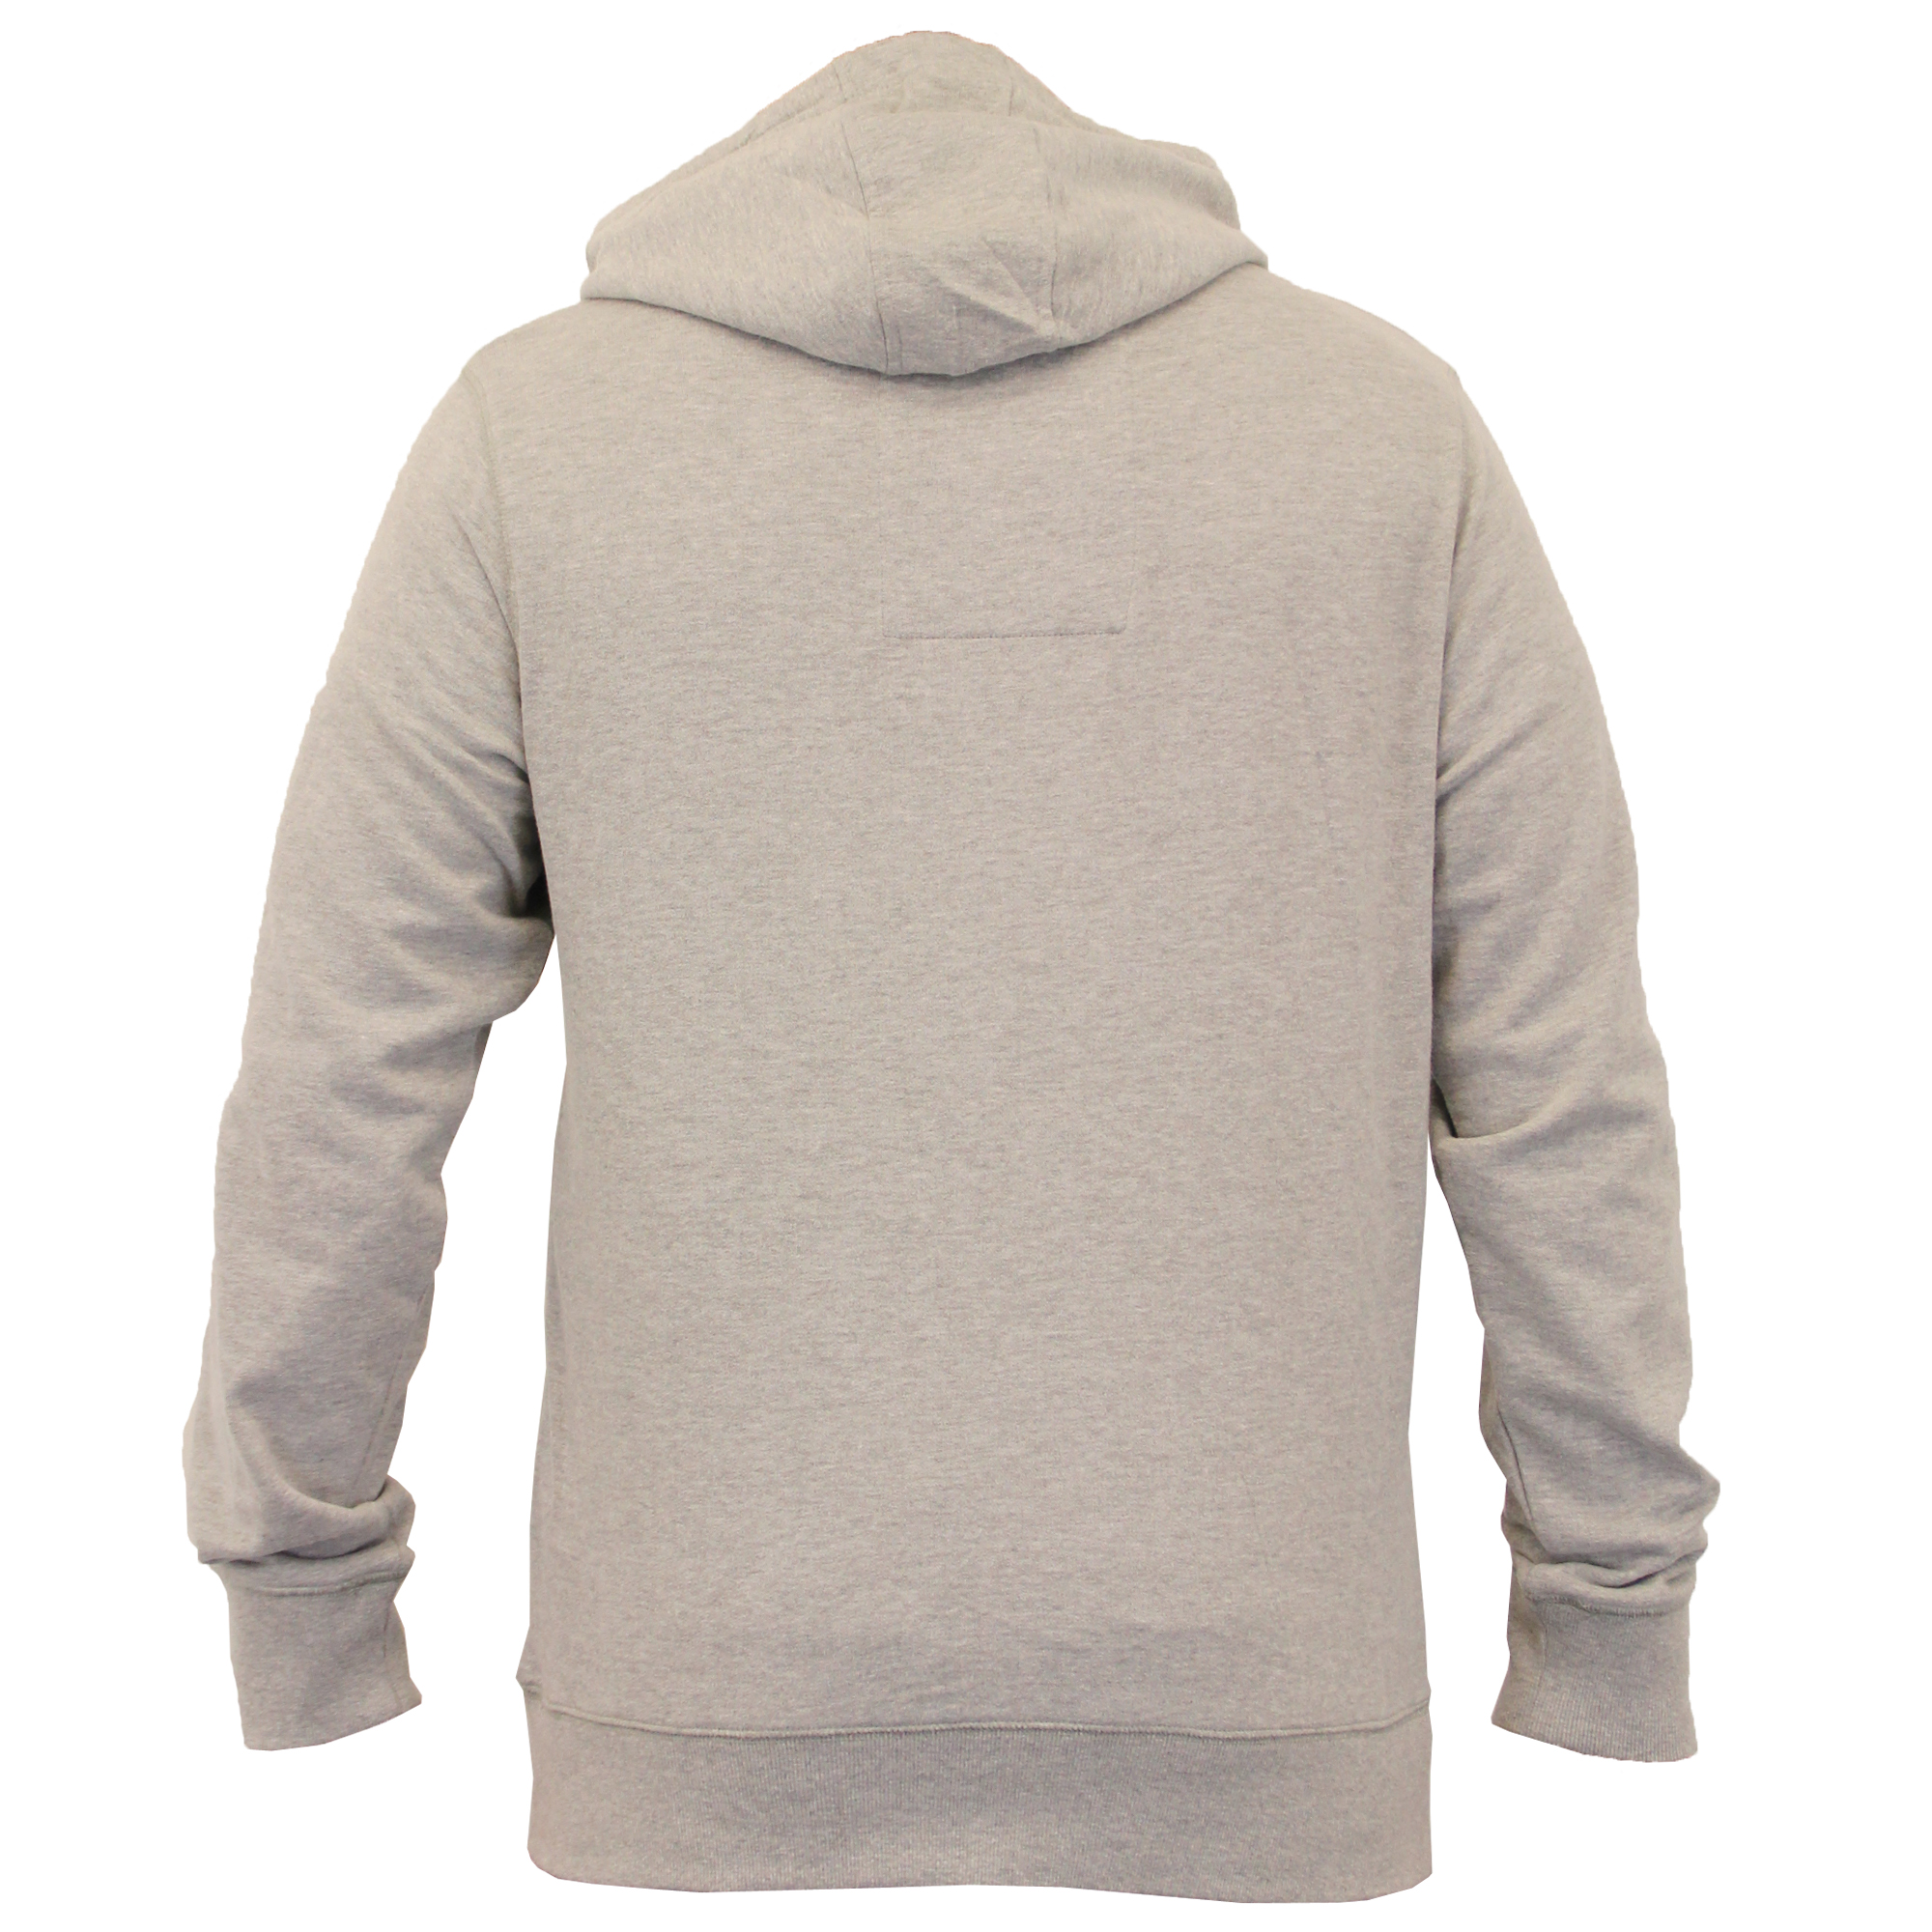 Mens-Hooded-Top-Sweatshirt-By-Tokyo-Laundry-Fleece-Lined thumbnail 11